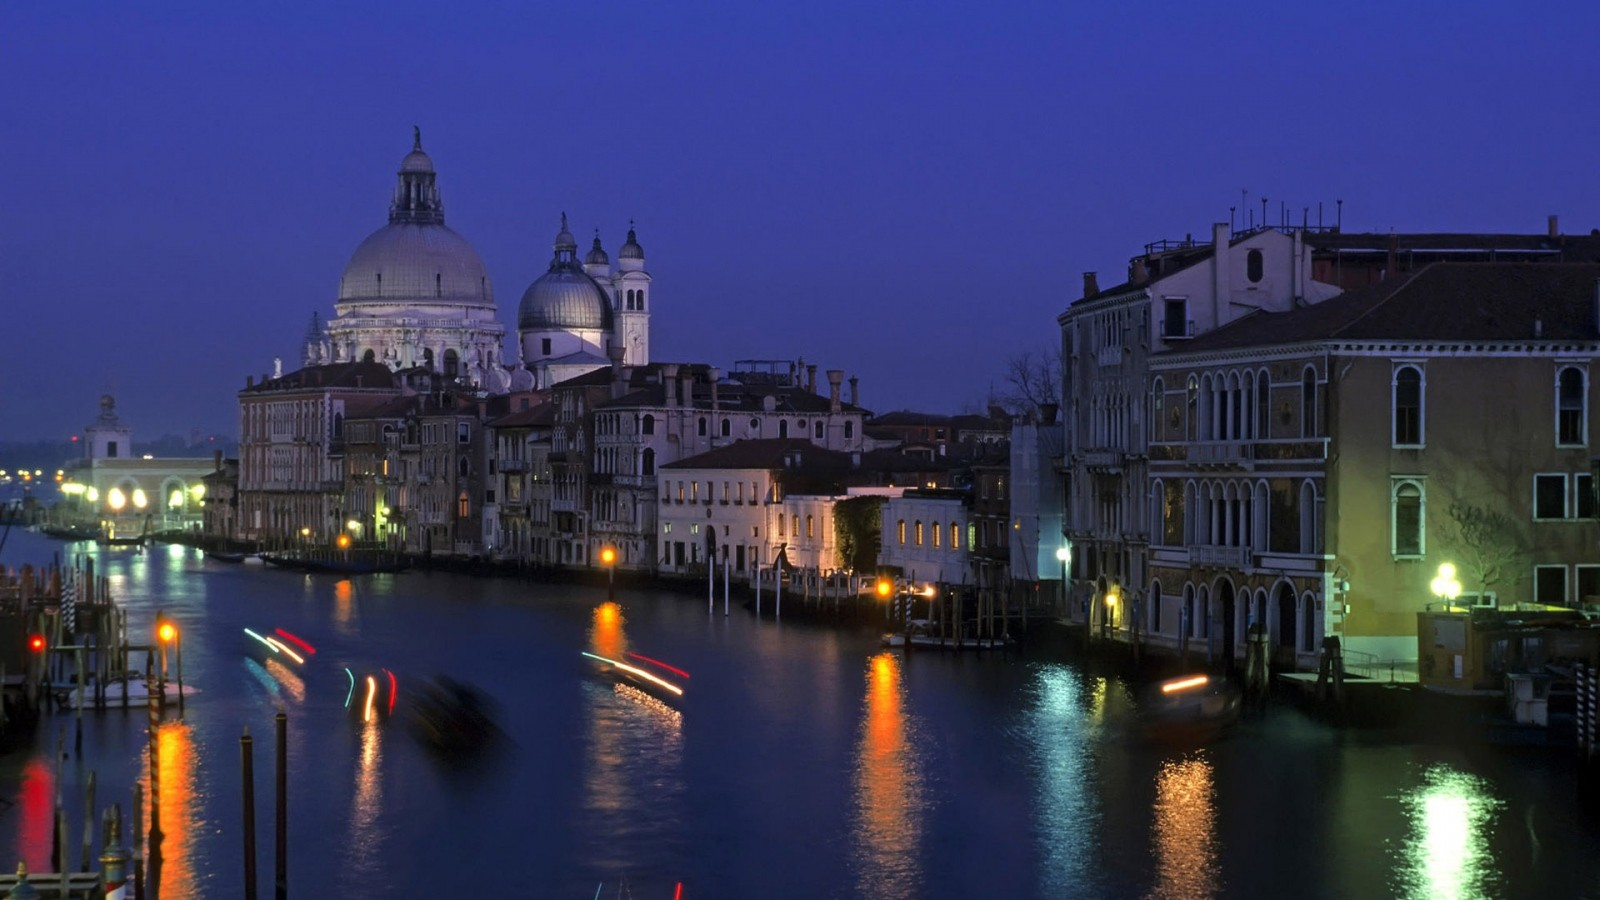 italy venice city at night wallpaper free stock images